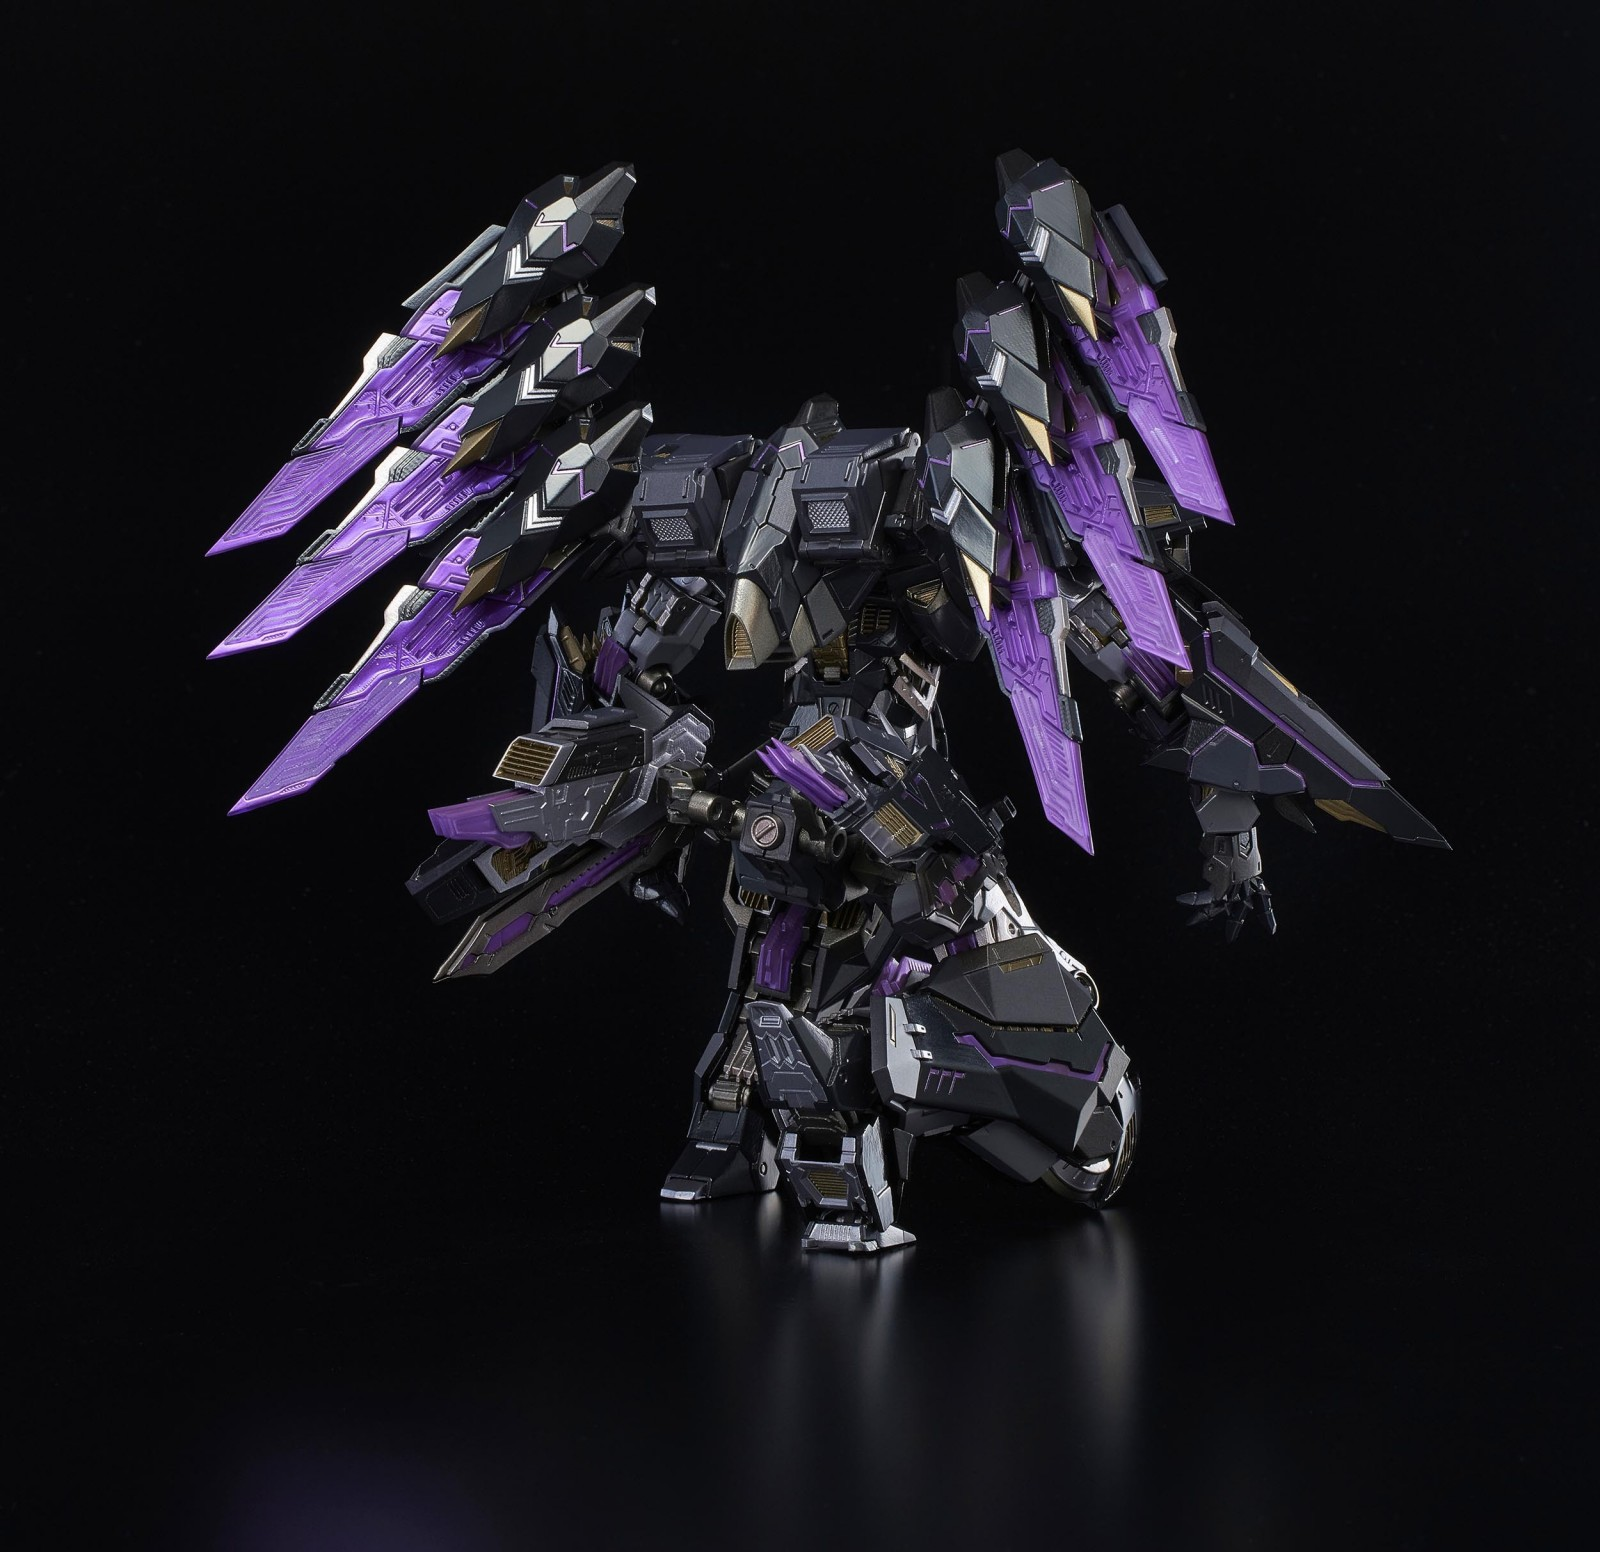 Transformers News: Flame Toys Kuro Kara Kuri IDW Stealth Bomber Megatron Revealed